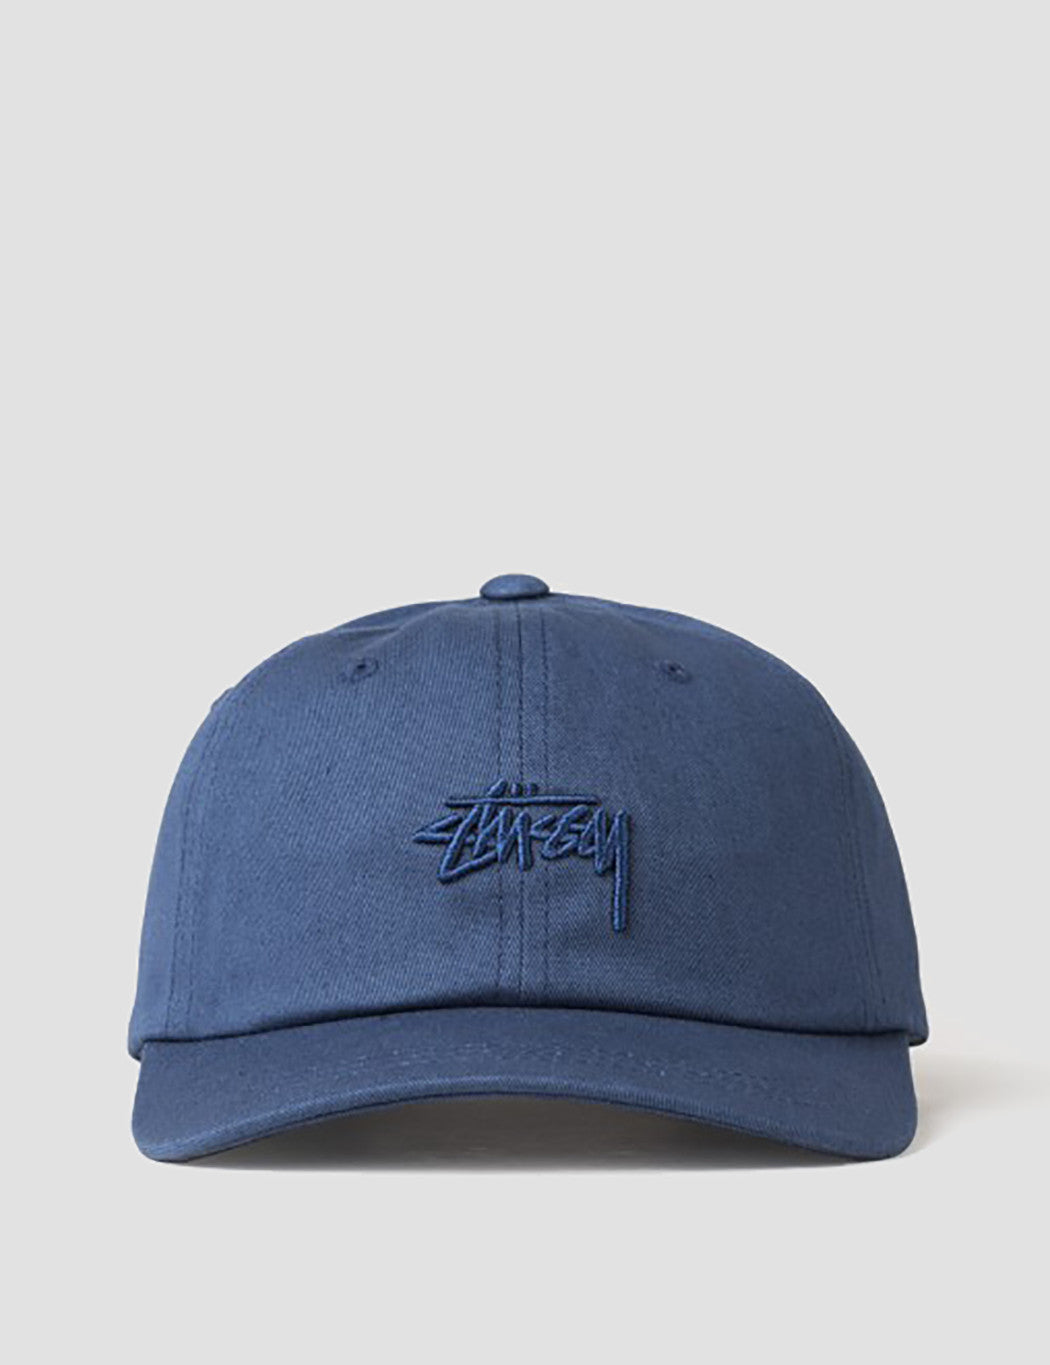 Stussy Tonal Stock Low Cap - Navy Blue